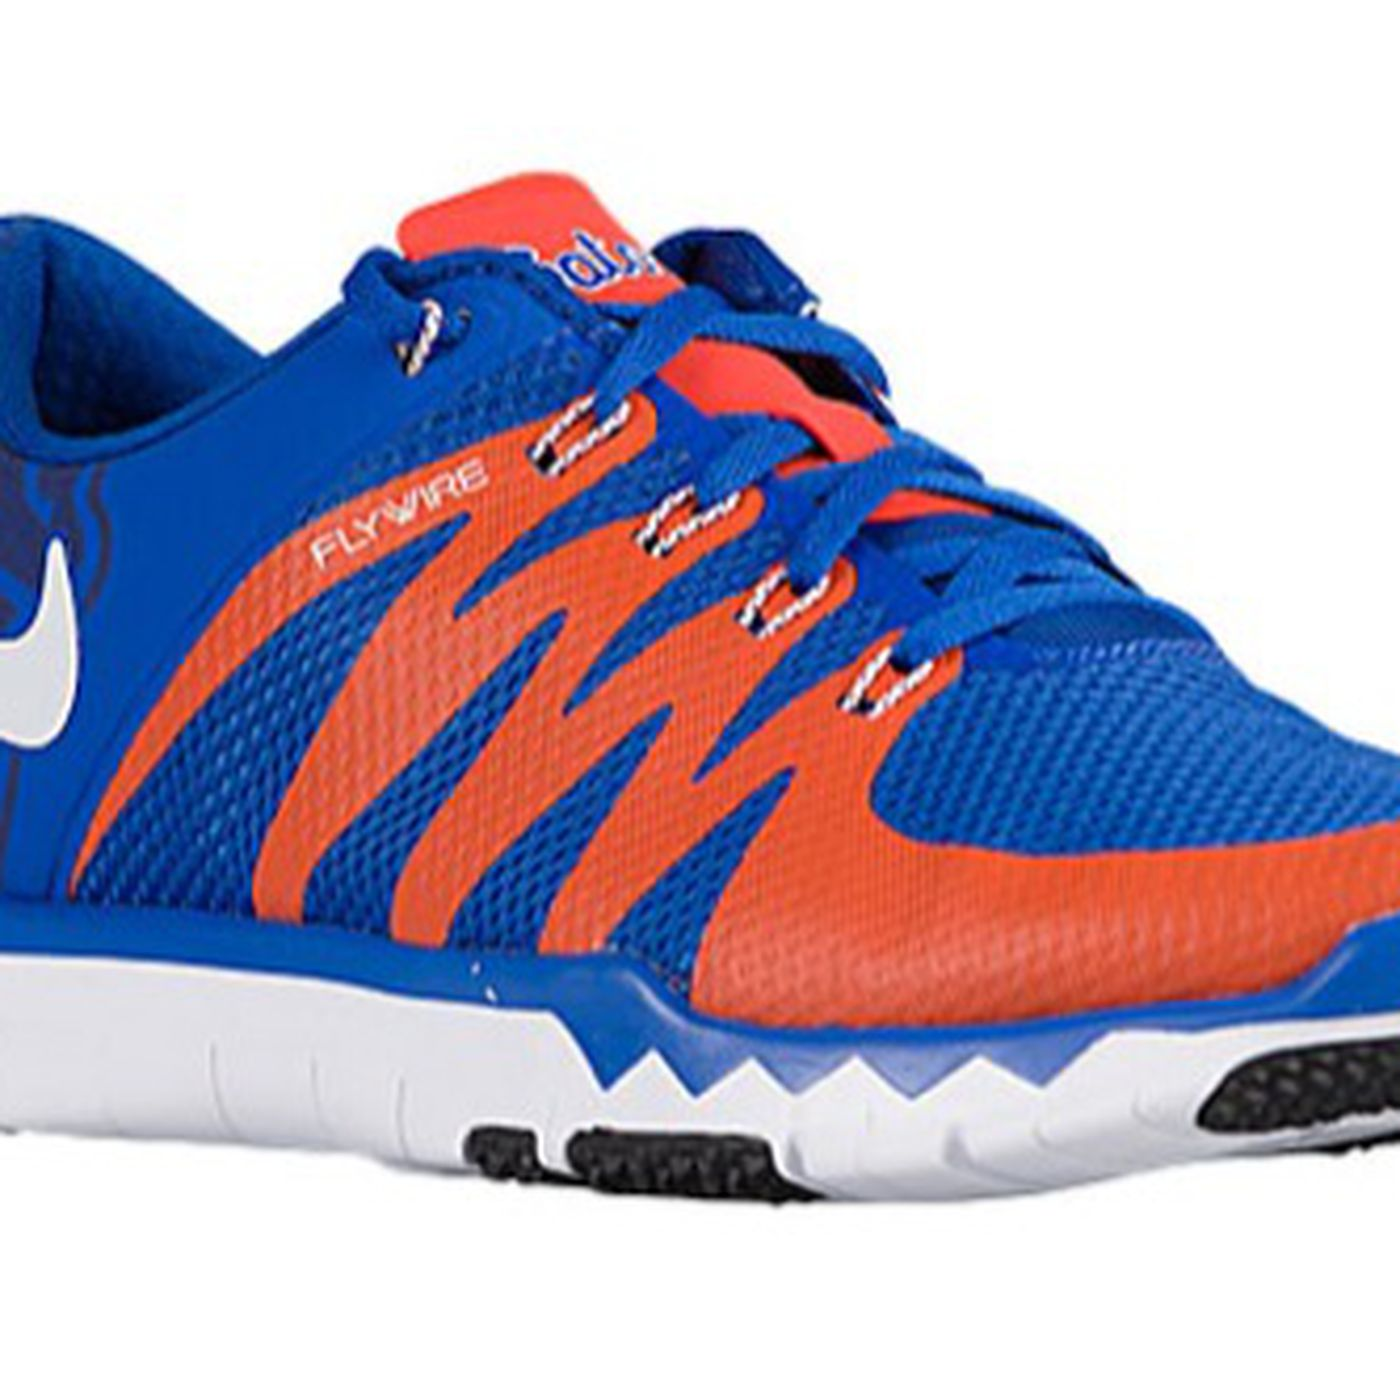 info for 7bede f27ee Nike's Free Trainer 5.0